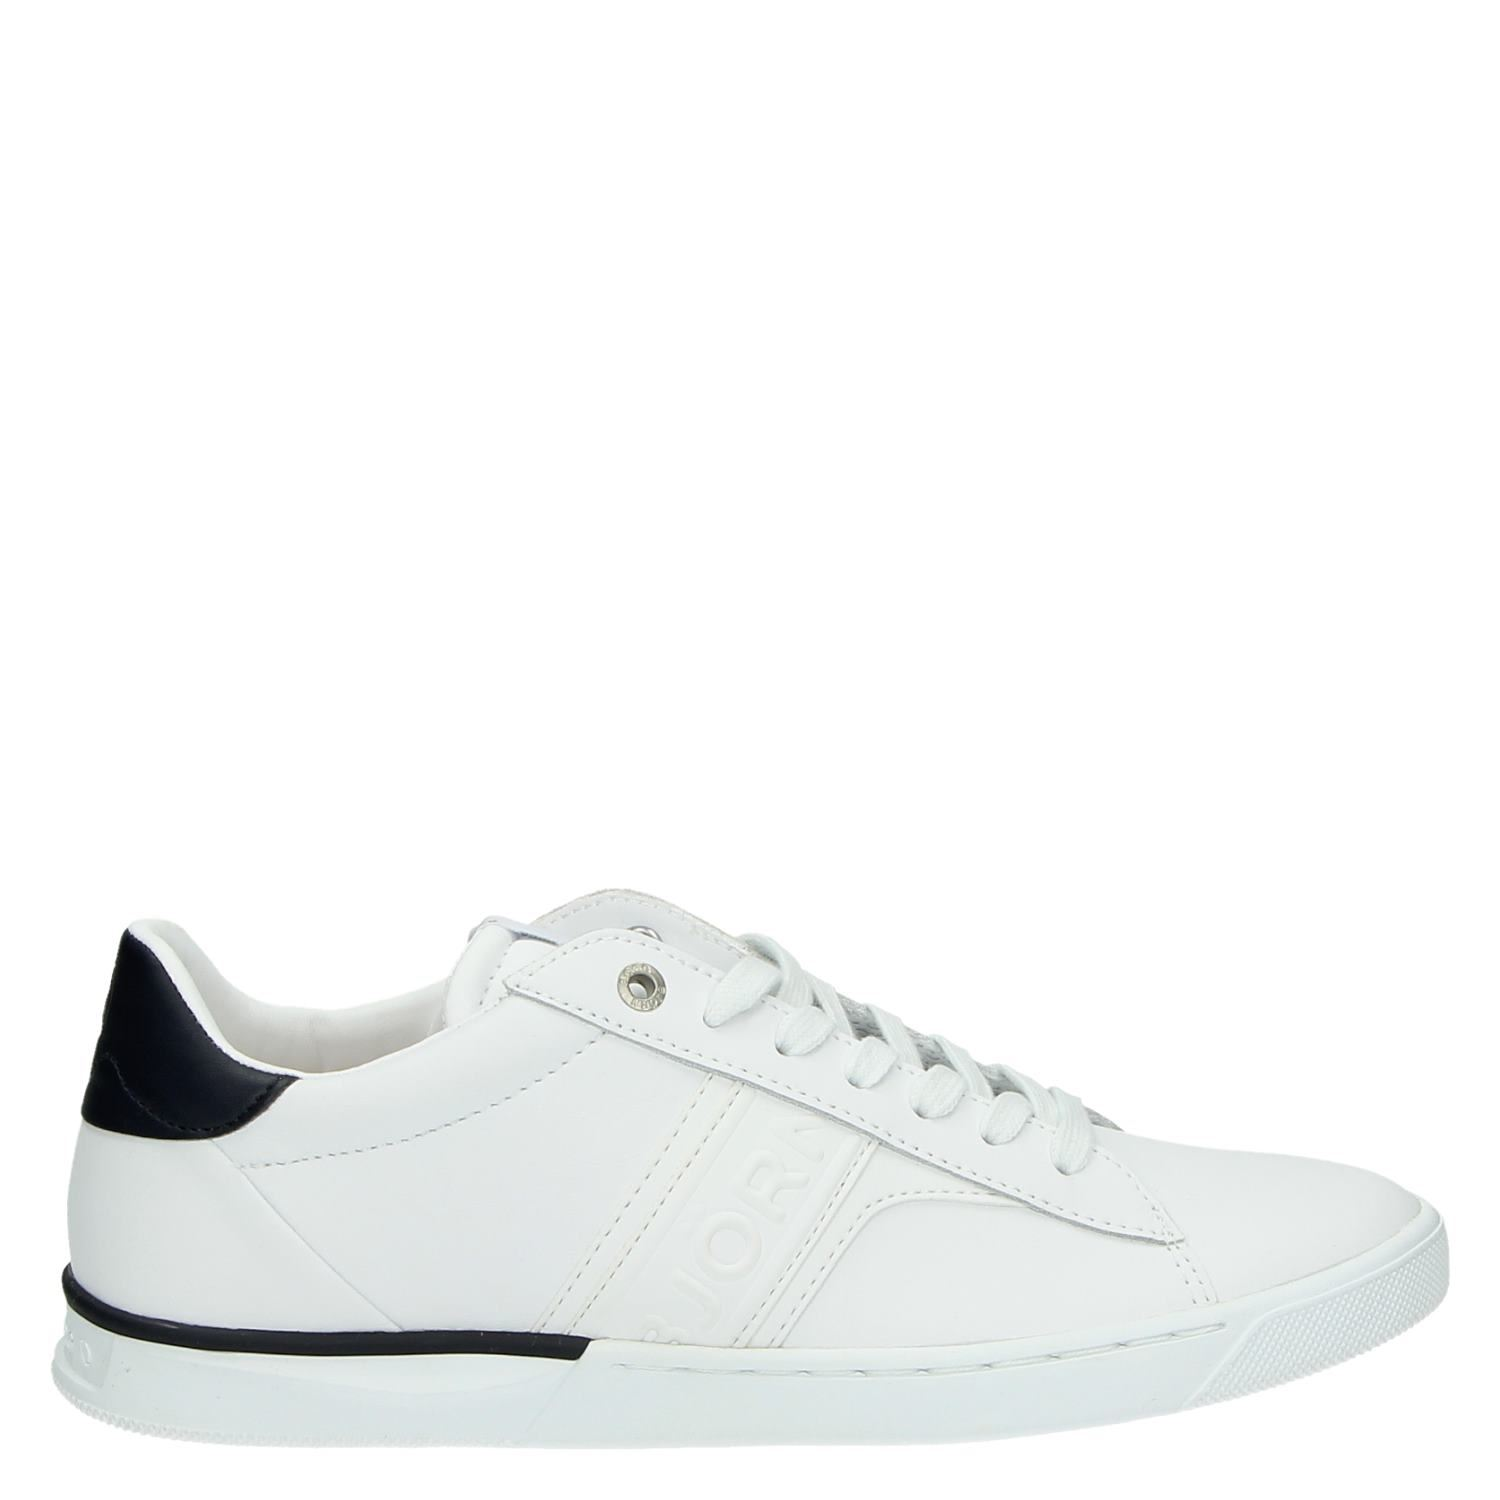 1ce8ae73357 Bjorn Borg heren lage sneakers wit